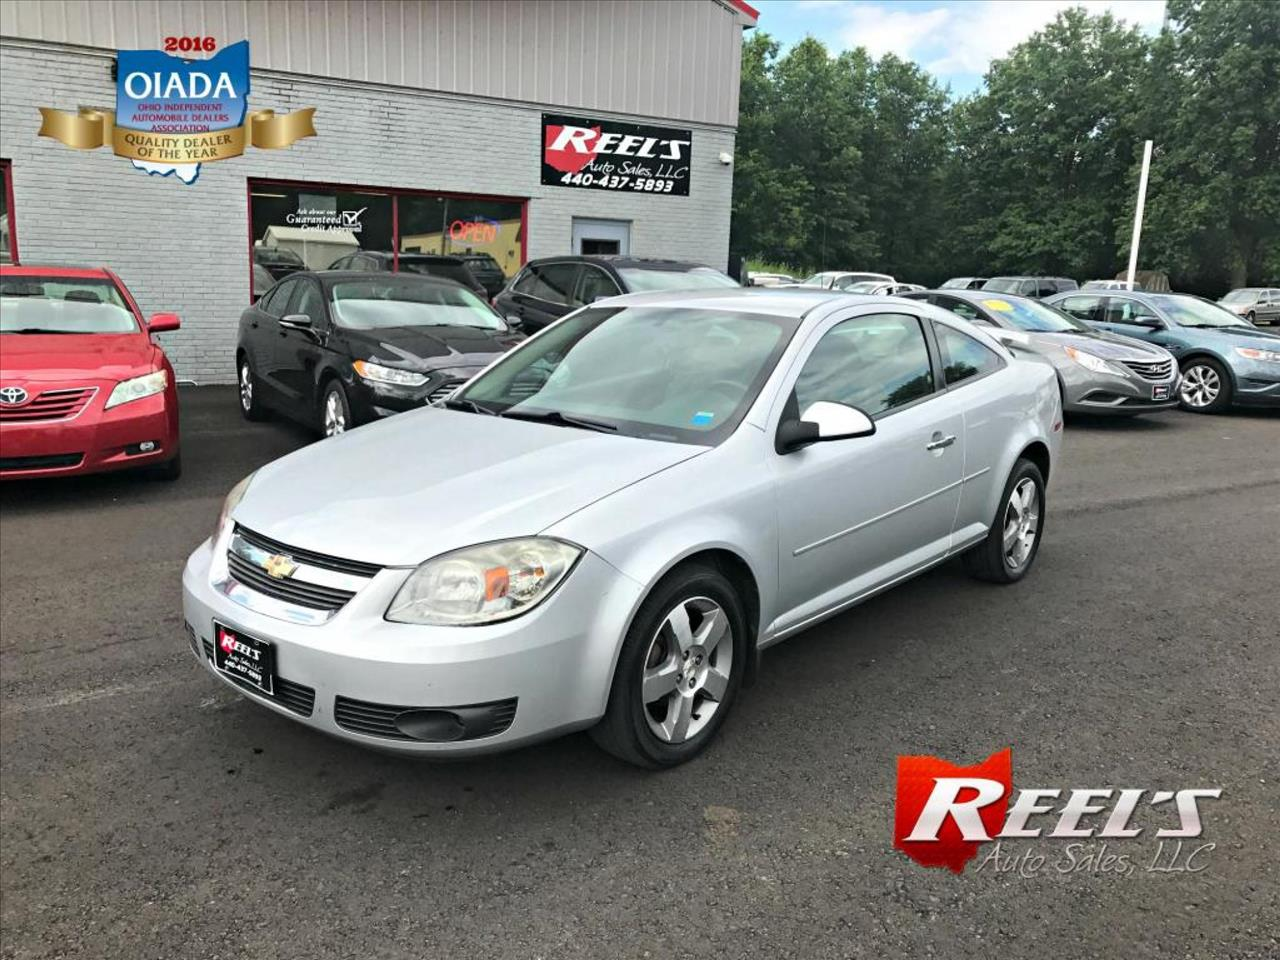 2010 Chevrolet Cobalt LT 2dr Coupe   Orwell OH